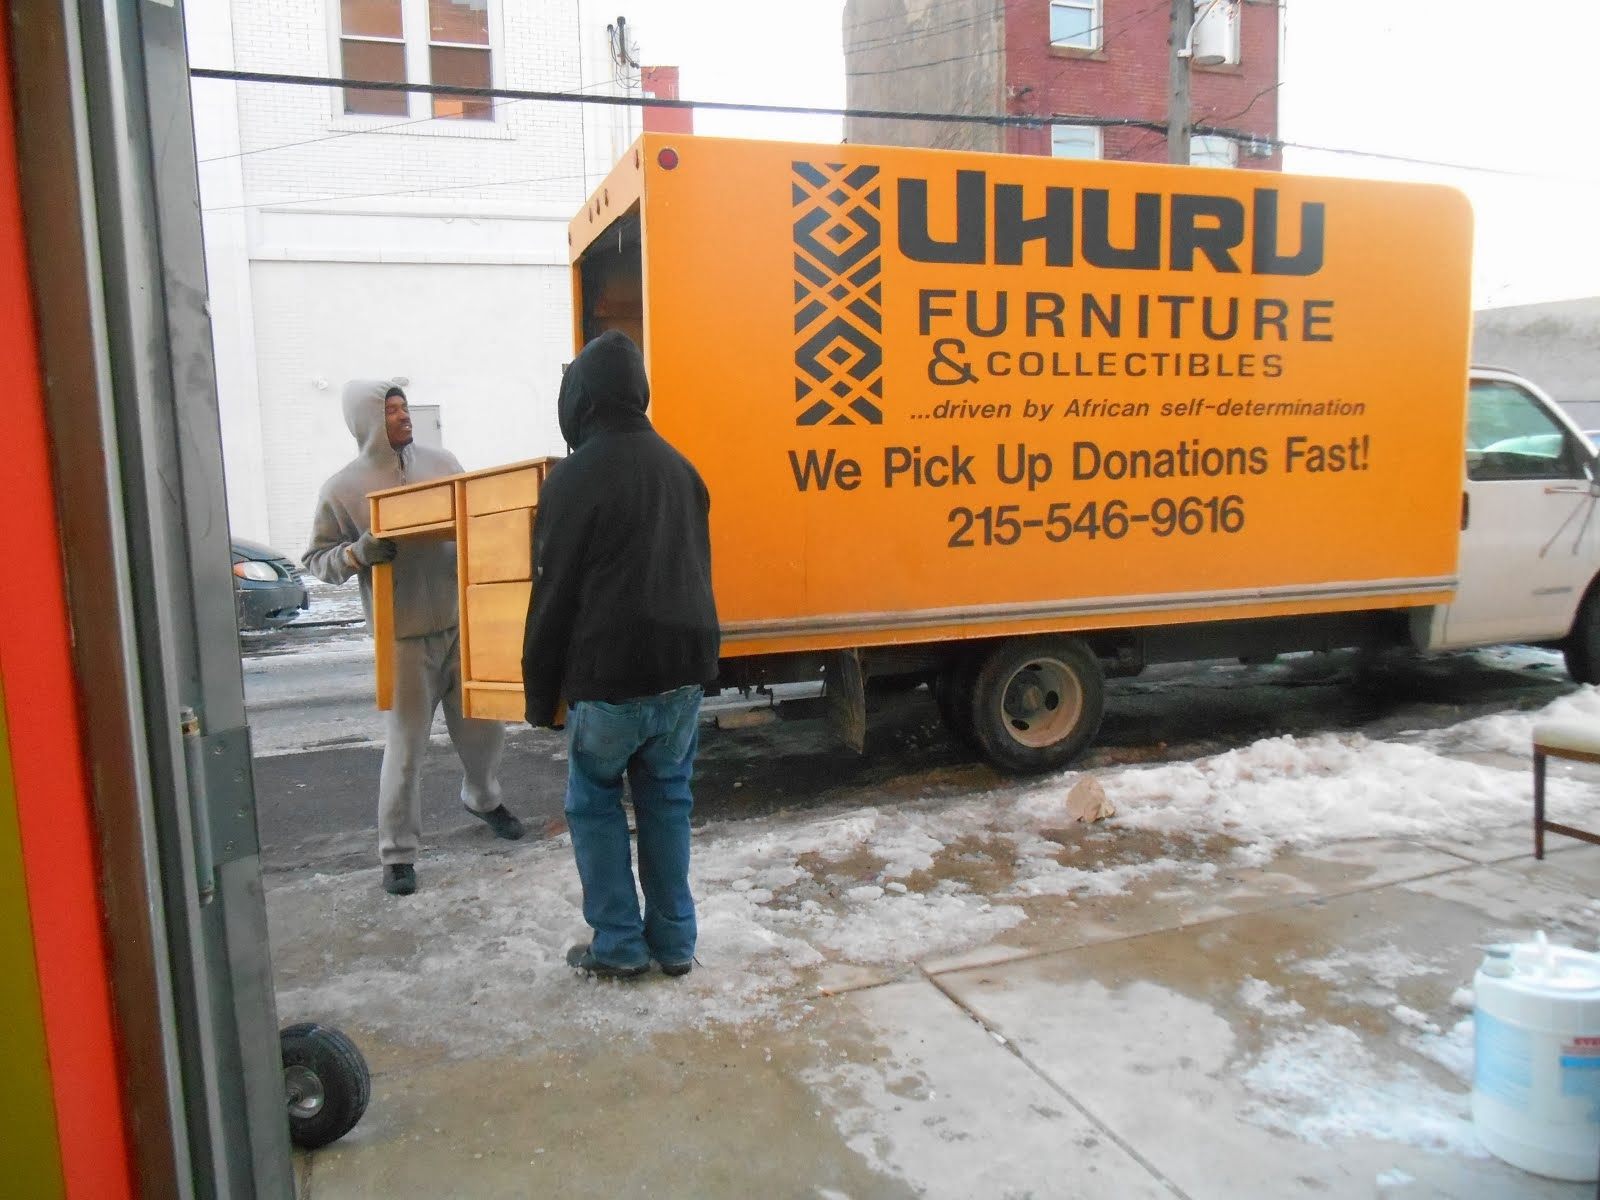 We Pick Up Donations! Fast! Free! Tax-deductible!